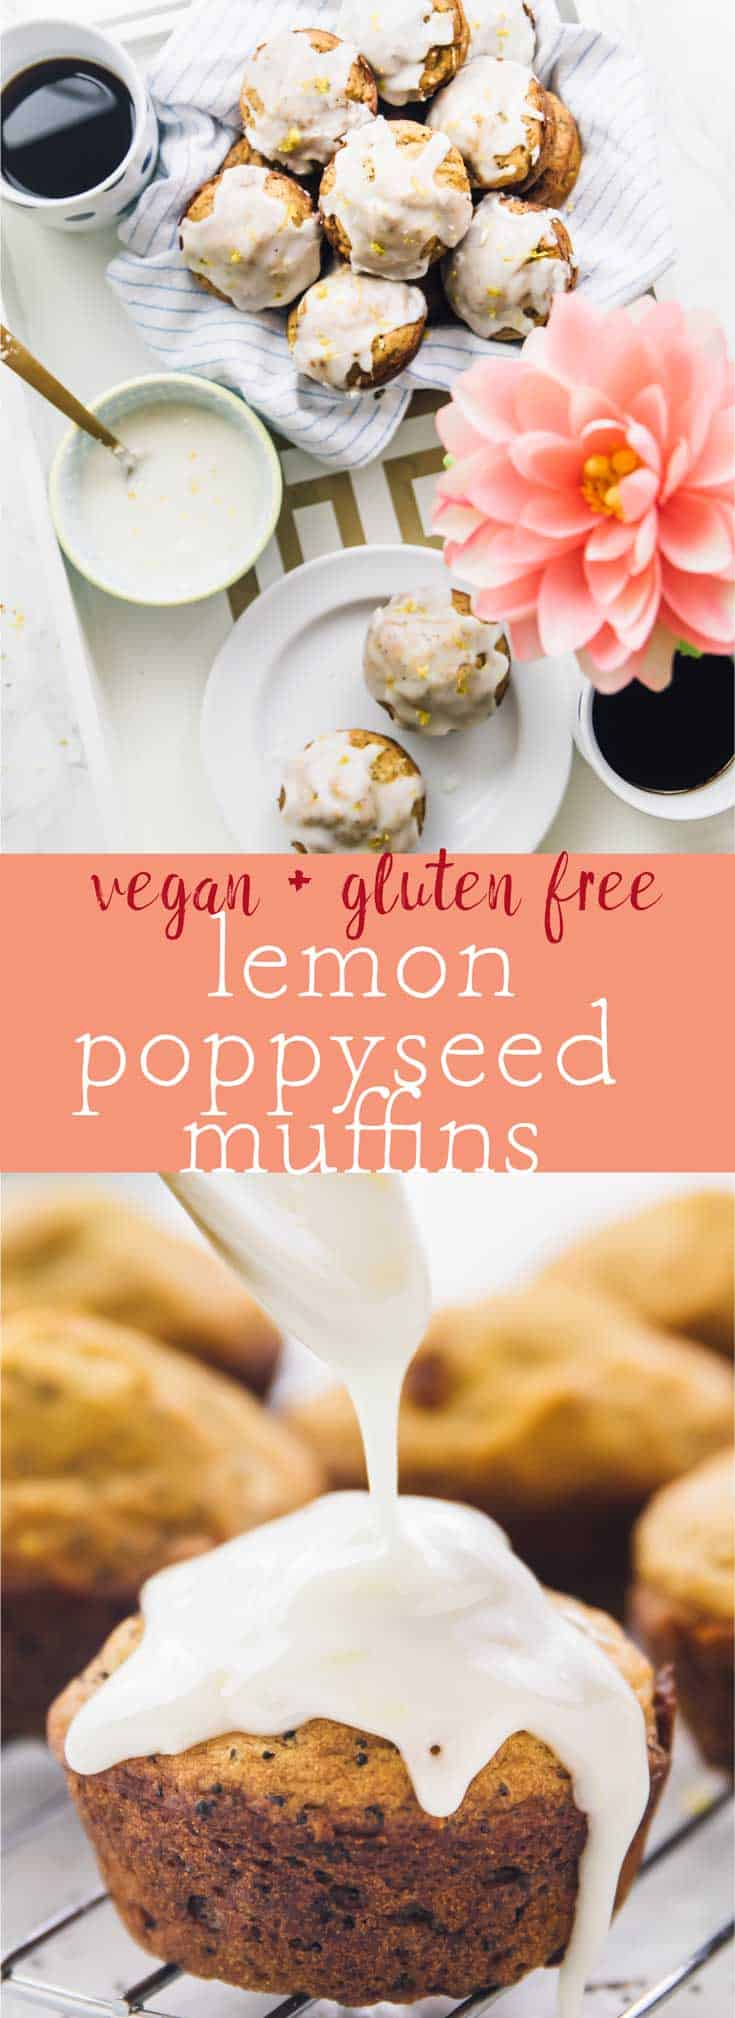 These Lemon Poppyseed Muffins are perfect for Spring & Mother's Day! They come together in one bowl and are vegan and gluten free! via https://jessicainthekitchen.com